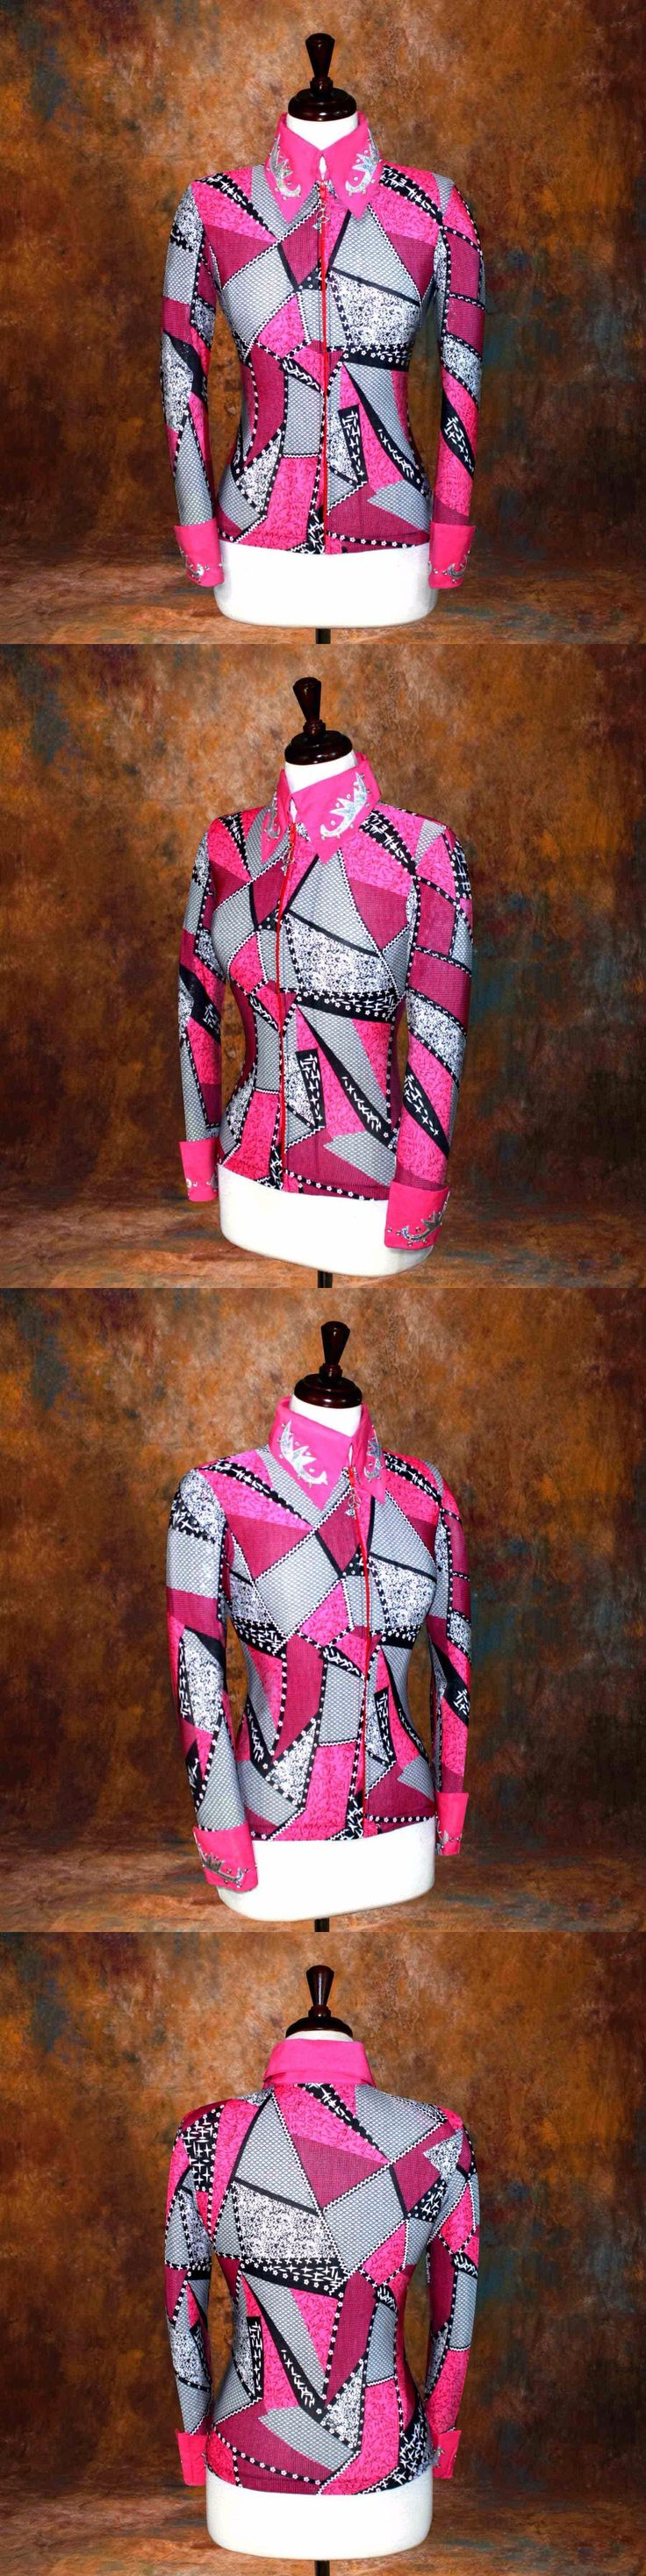 Other Rider Clothing 3167: 3X-Large Showmanship Pleasure Horsemanship Show Jacket Shirt Rodeo Queen Rail -> BUY IT NOW ONLY: $74.98 on eBay!